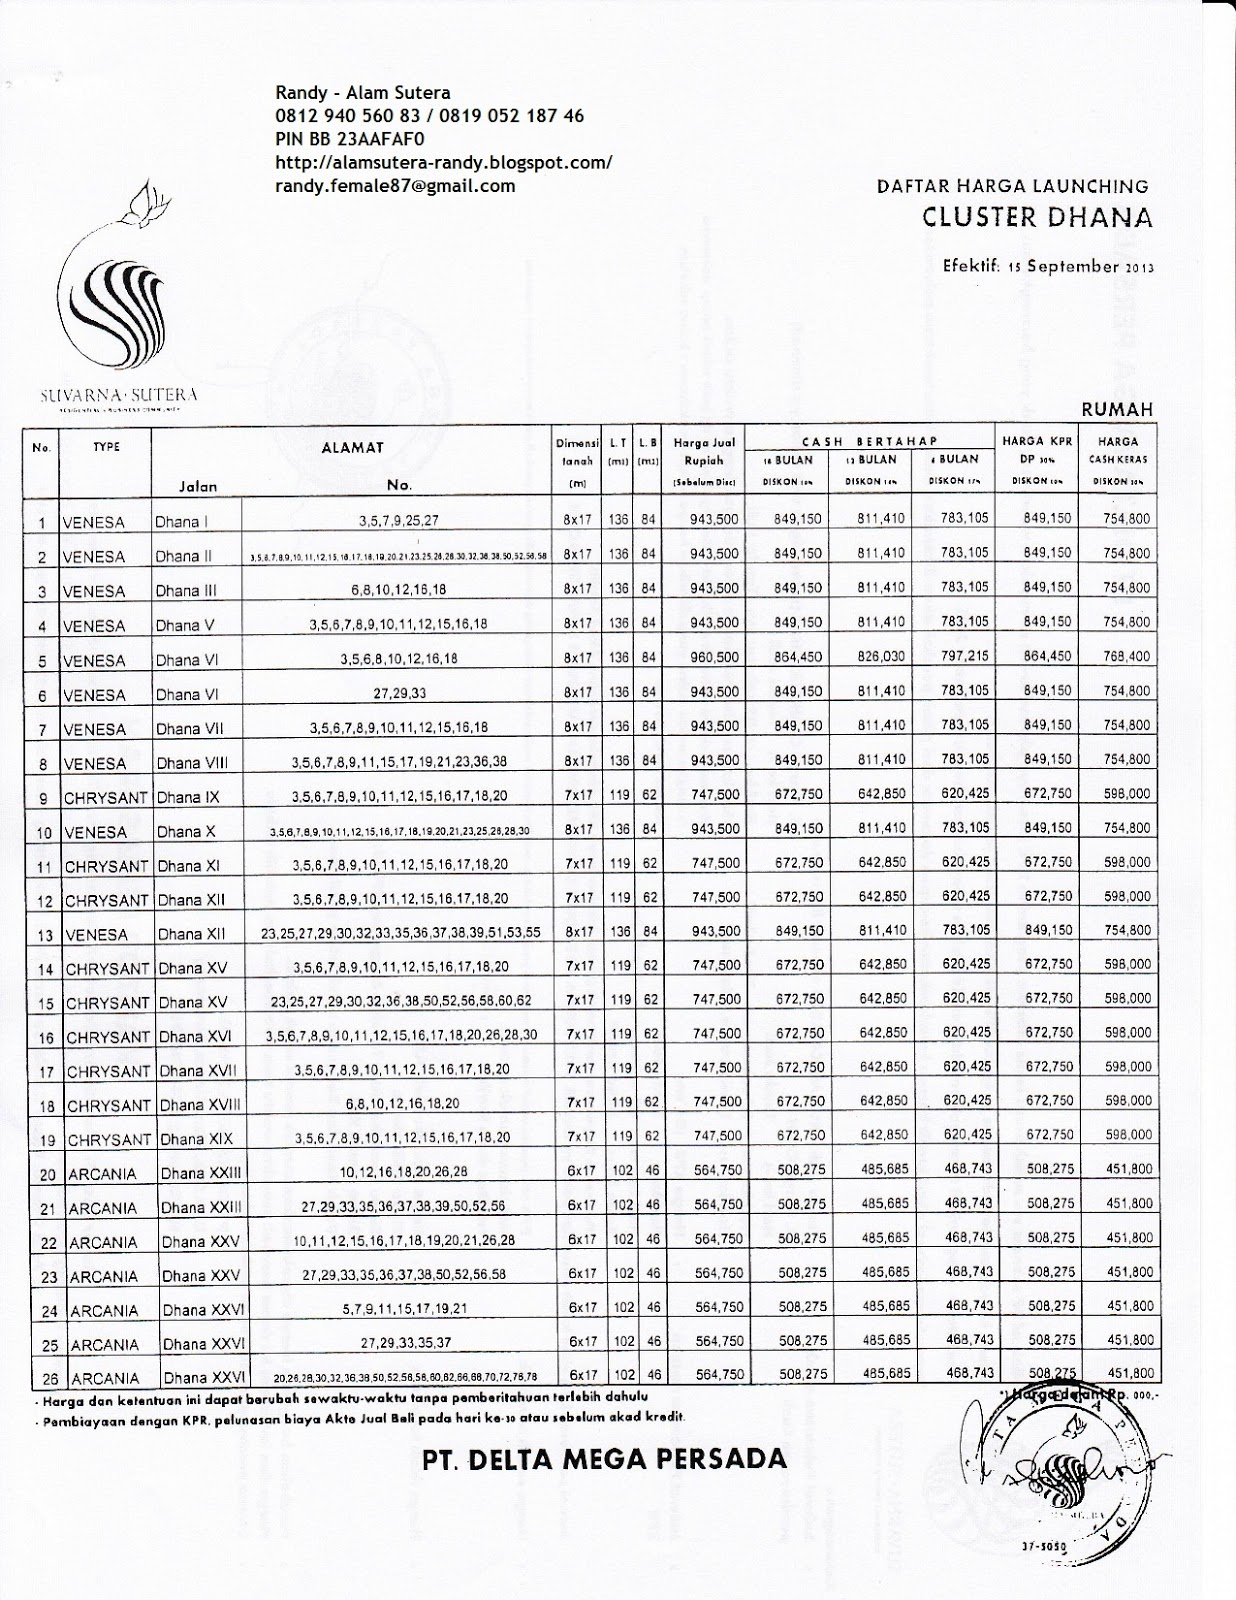 Panjang List Gypsum Lifestyle Property September 2013